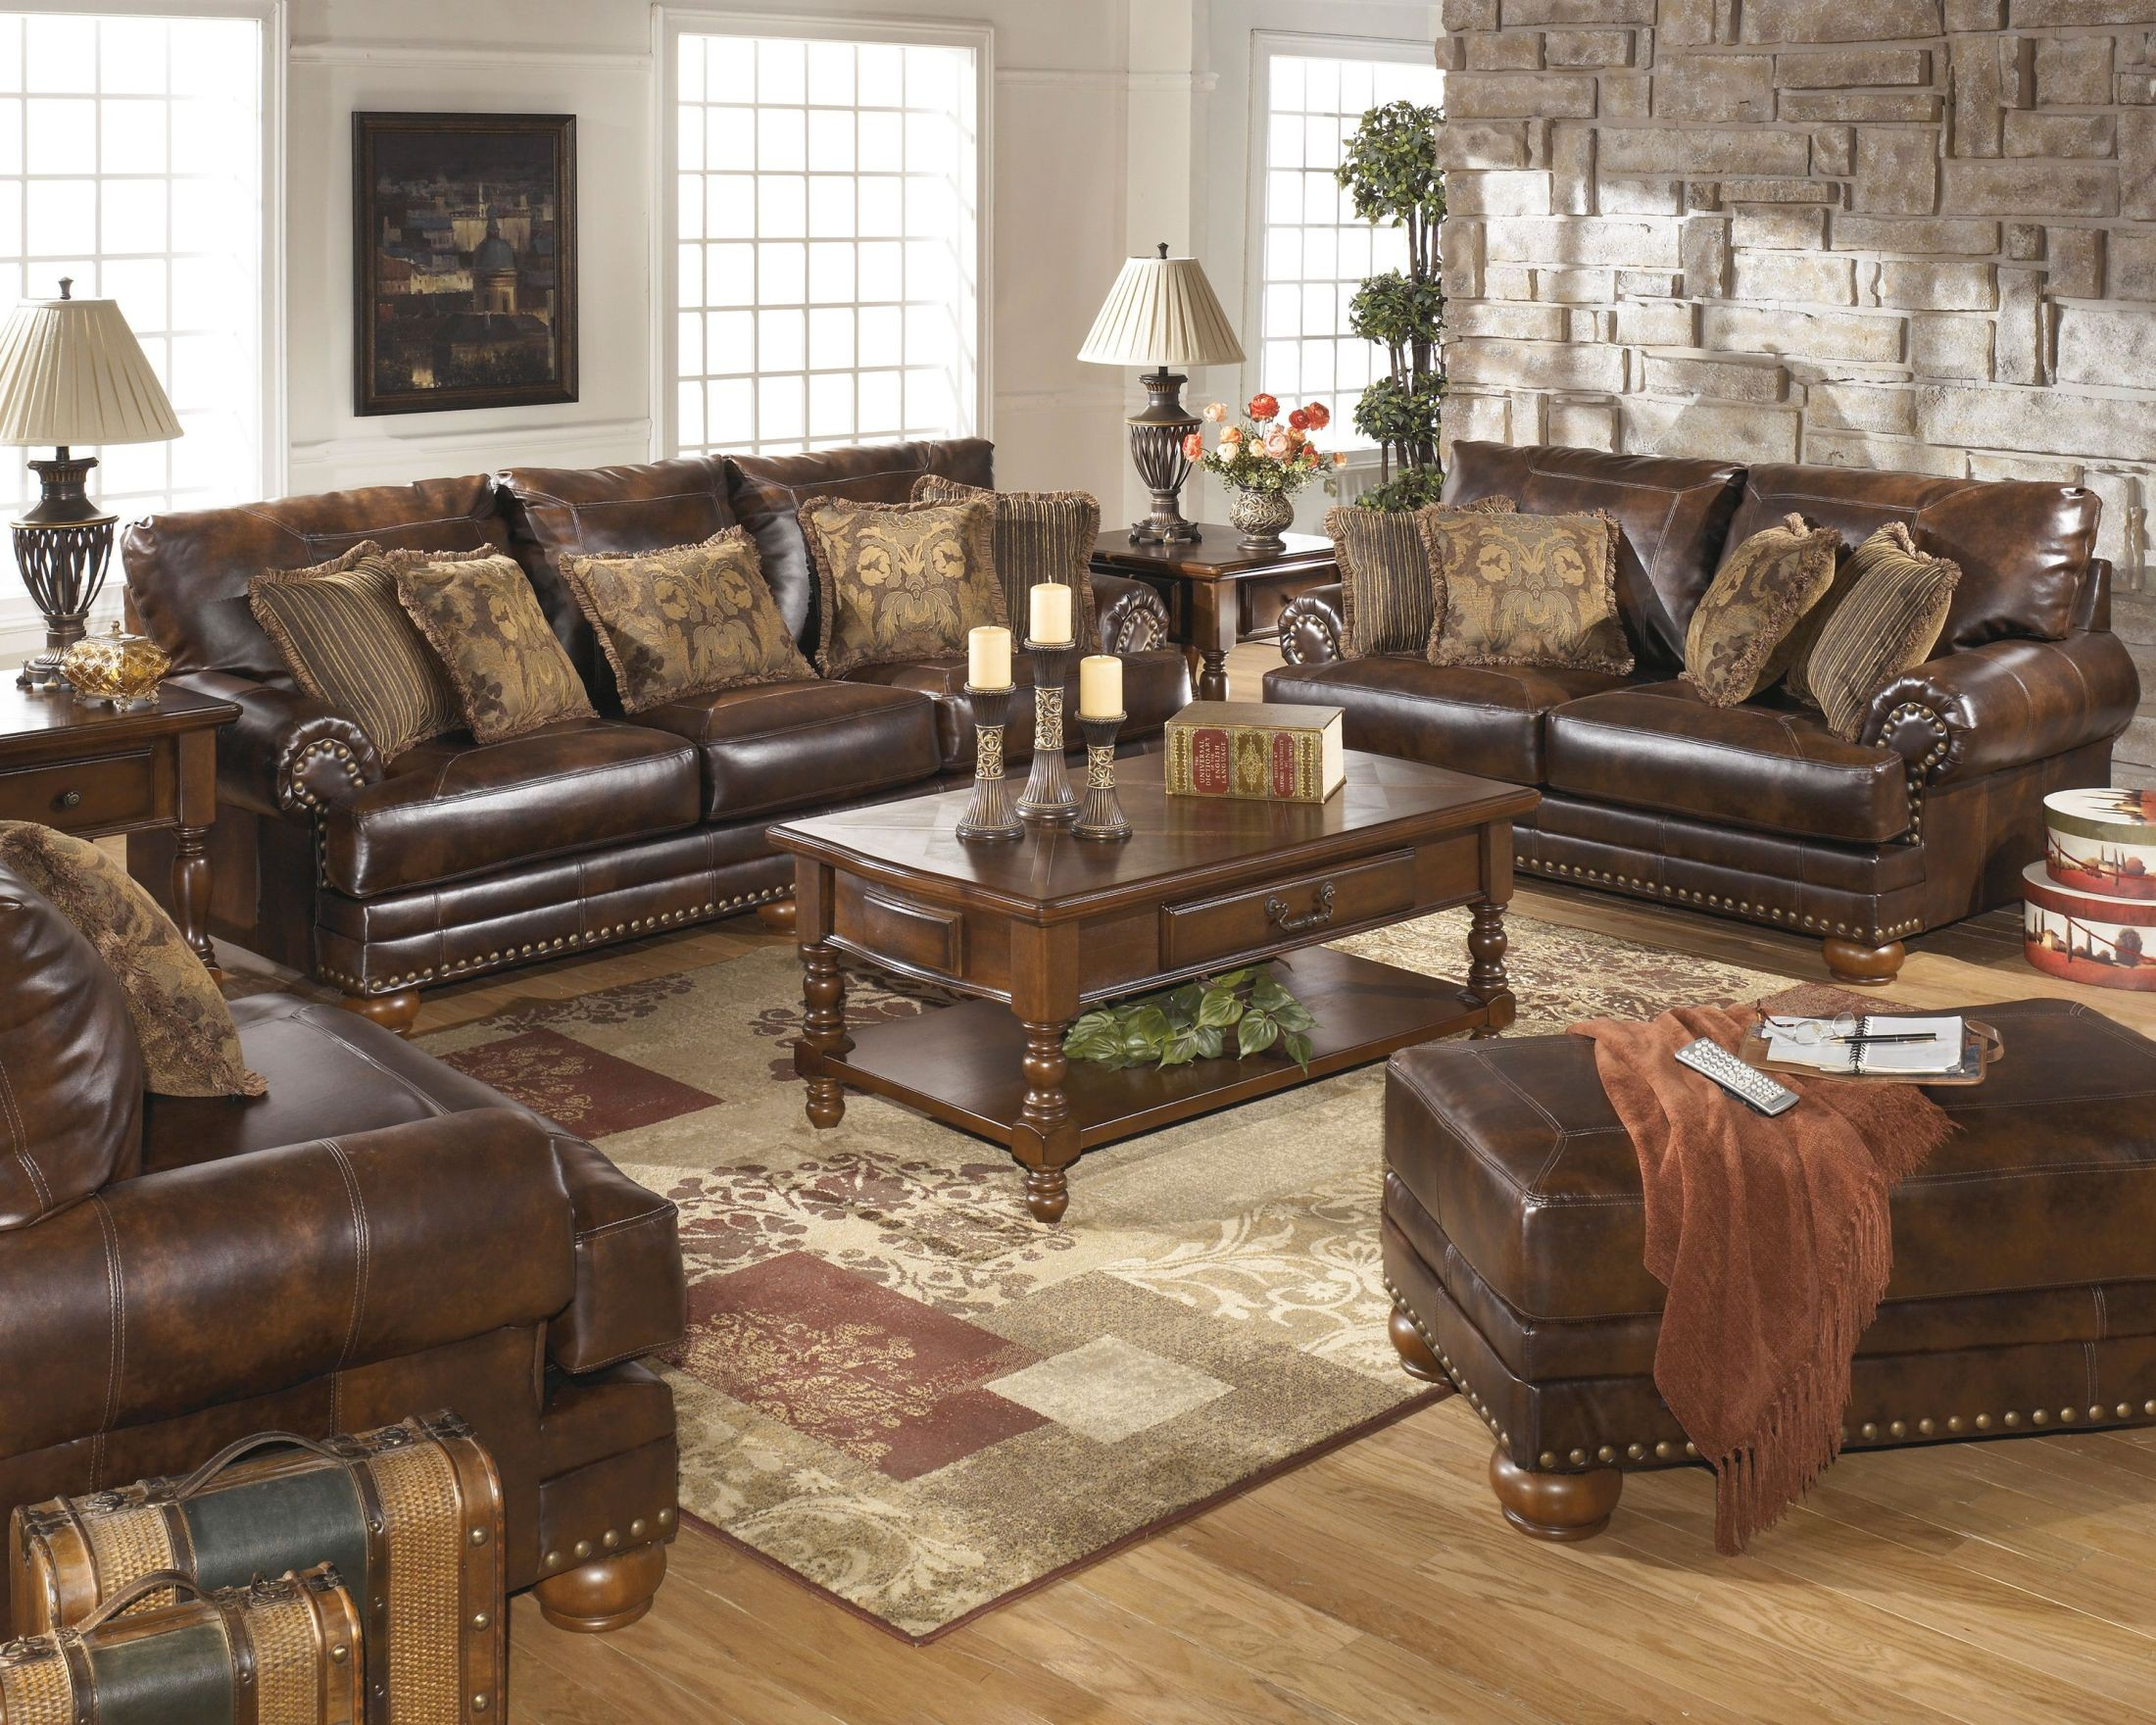 Chaling DuraBlend Antique Living Room Set From Signiture Design By Ashley ·  2295754